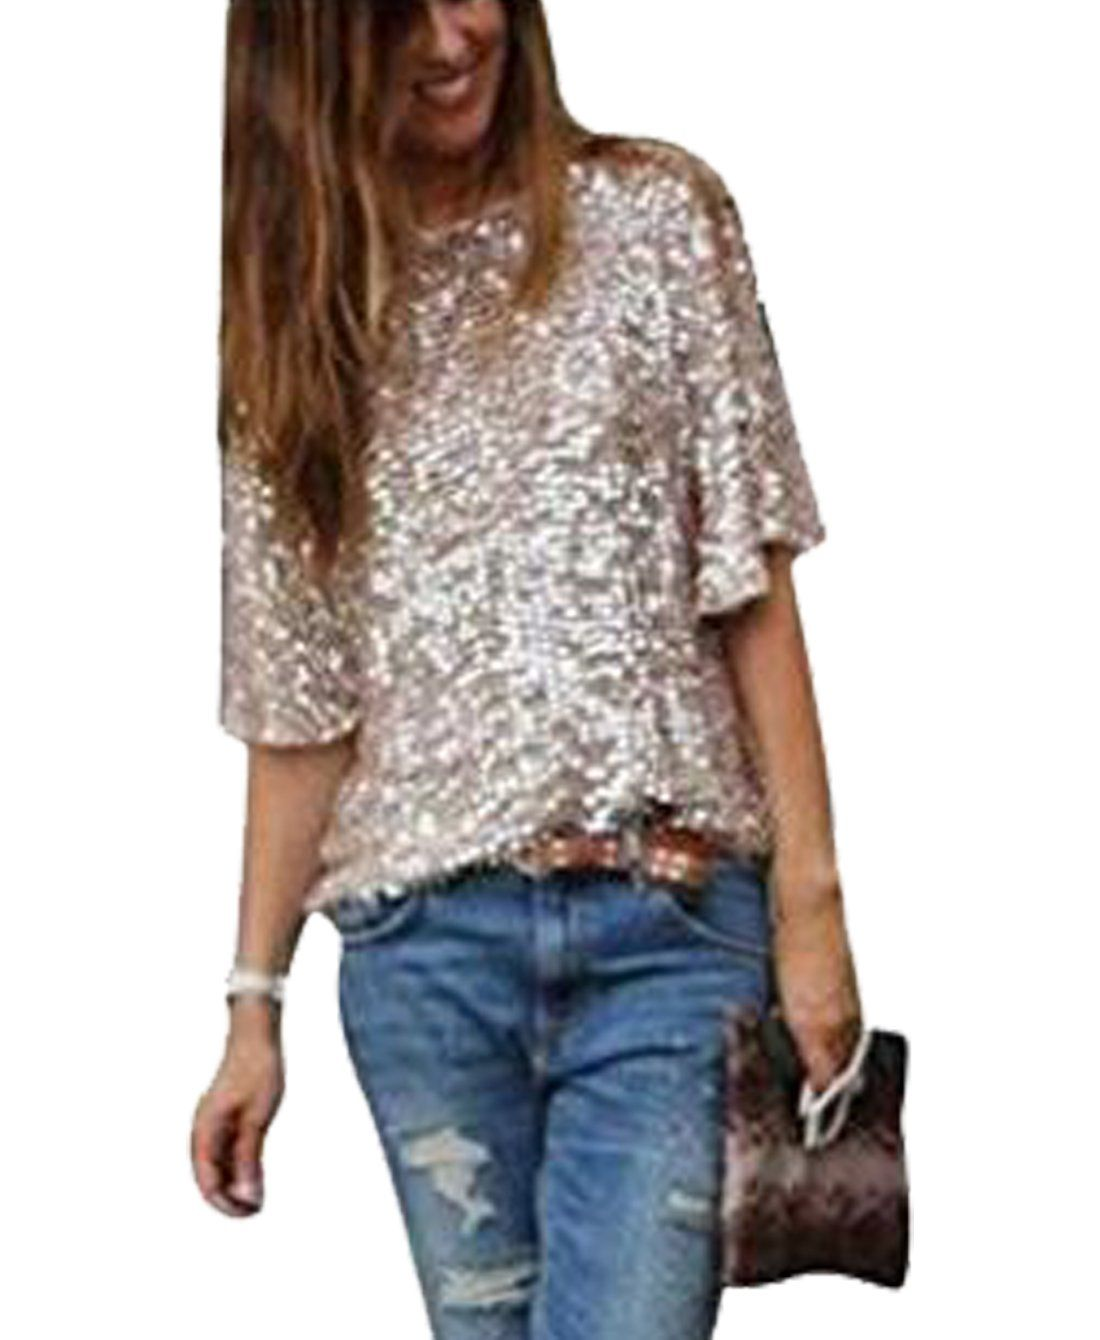 d489756fba1 Womens Off Shoulder Sequin Glitter Sparkle Party Top Blouse Shirt Plus Size  with Sleeve   Details can be found by clicking on the image.